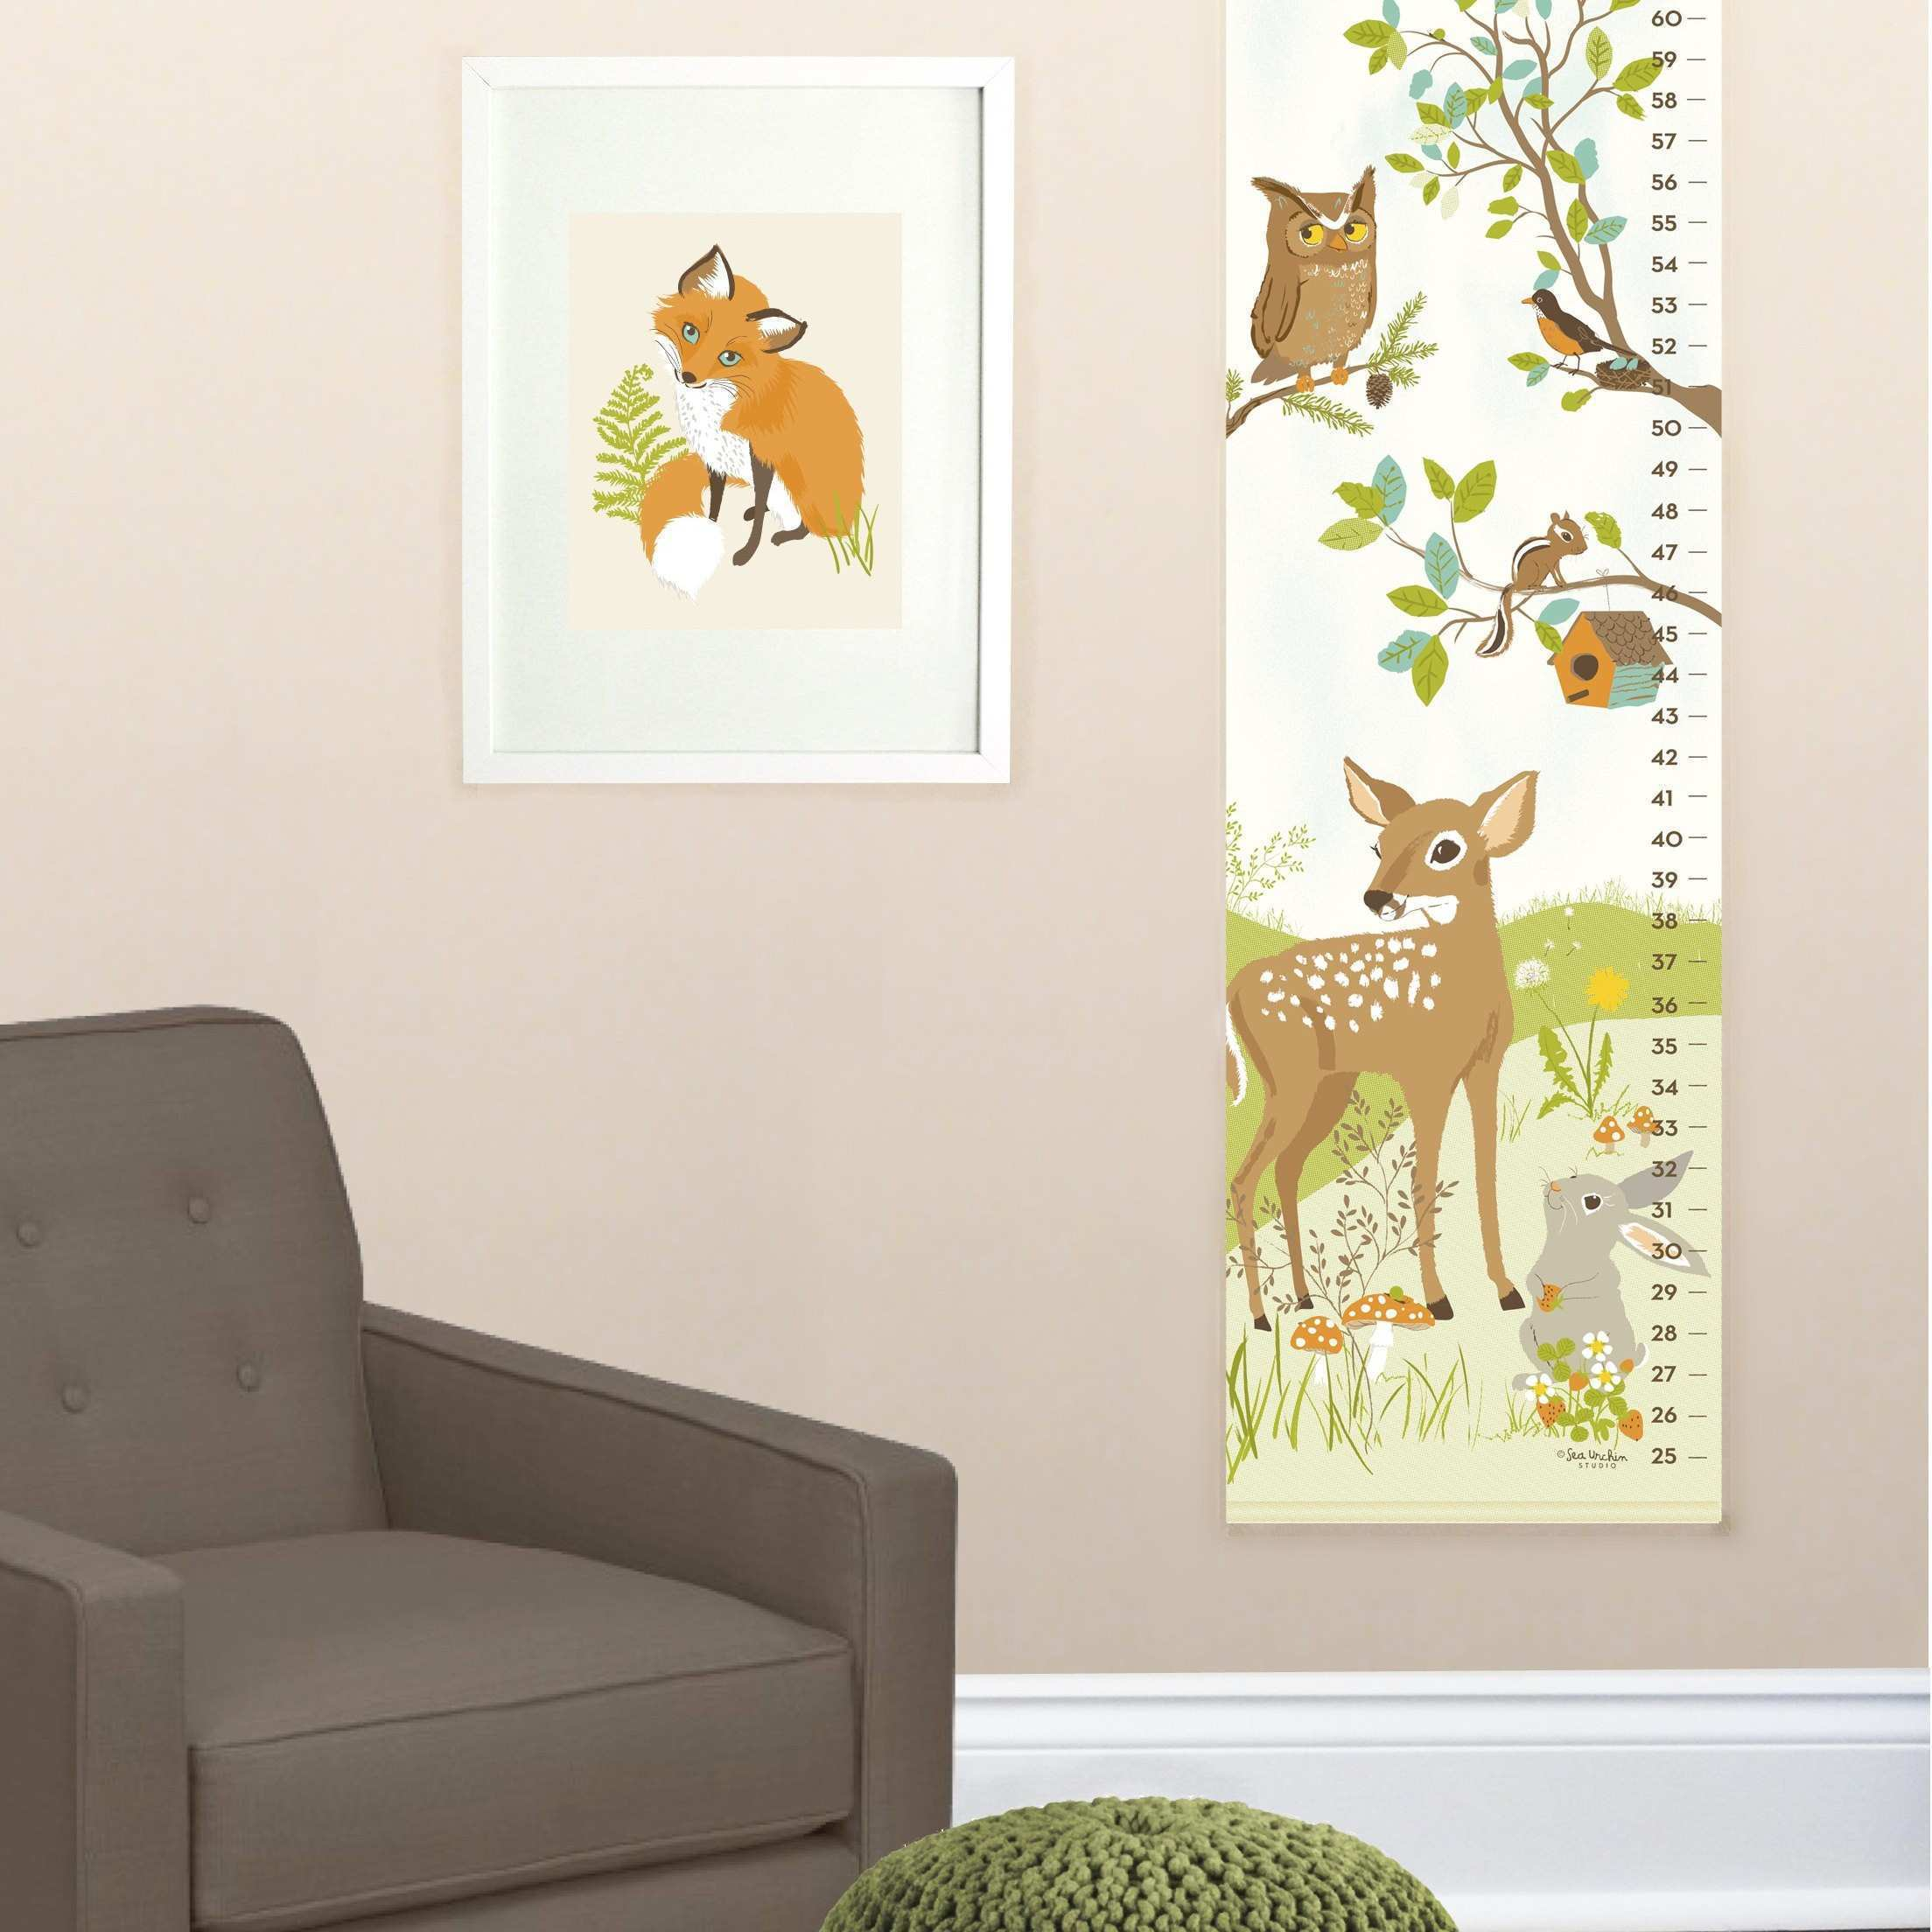 45 Inspirational Picture Wall Decals